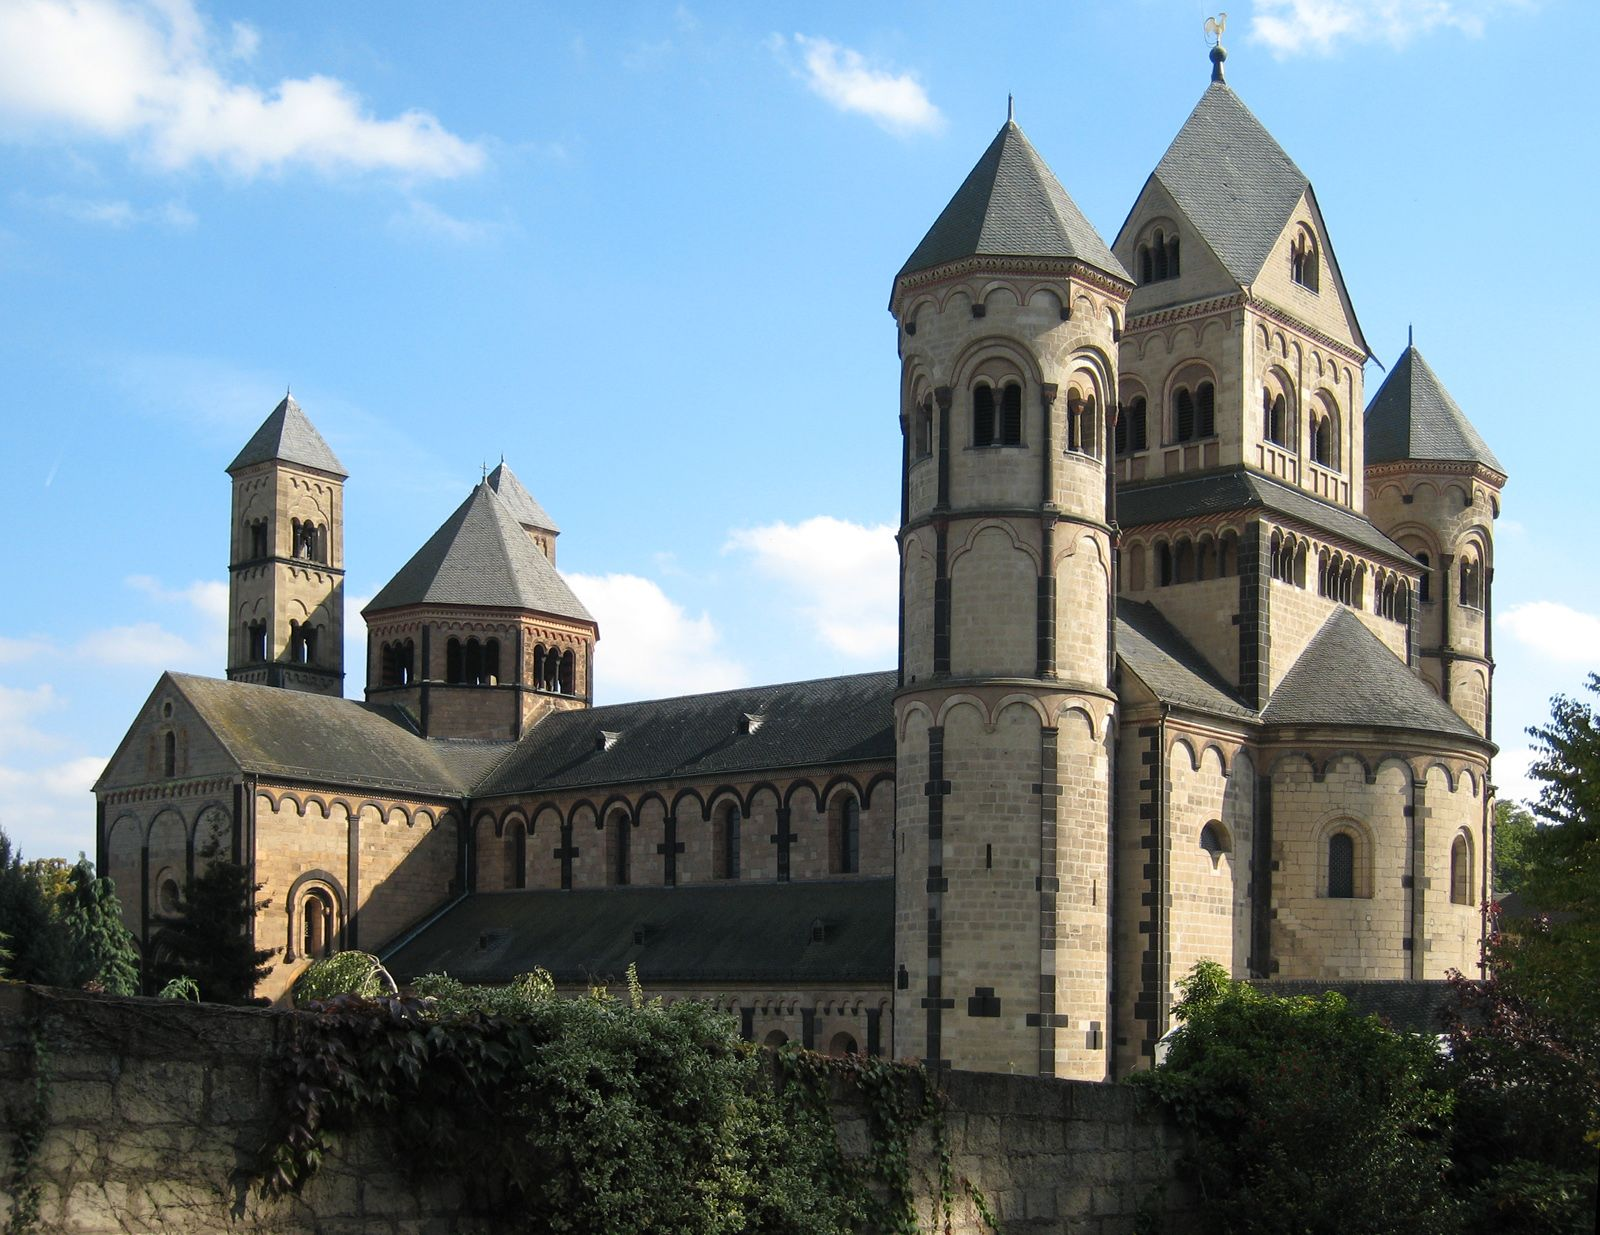 Modern Architecture Wiki romanesque architecture - wikipedia, the free encyclopedia | i